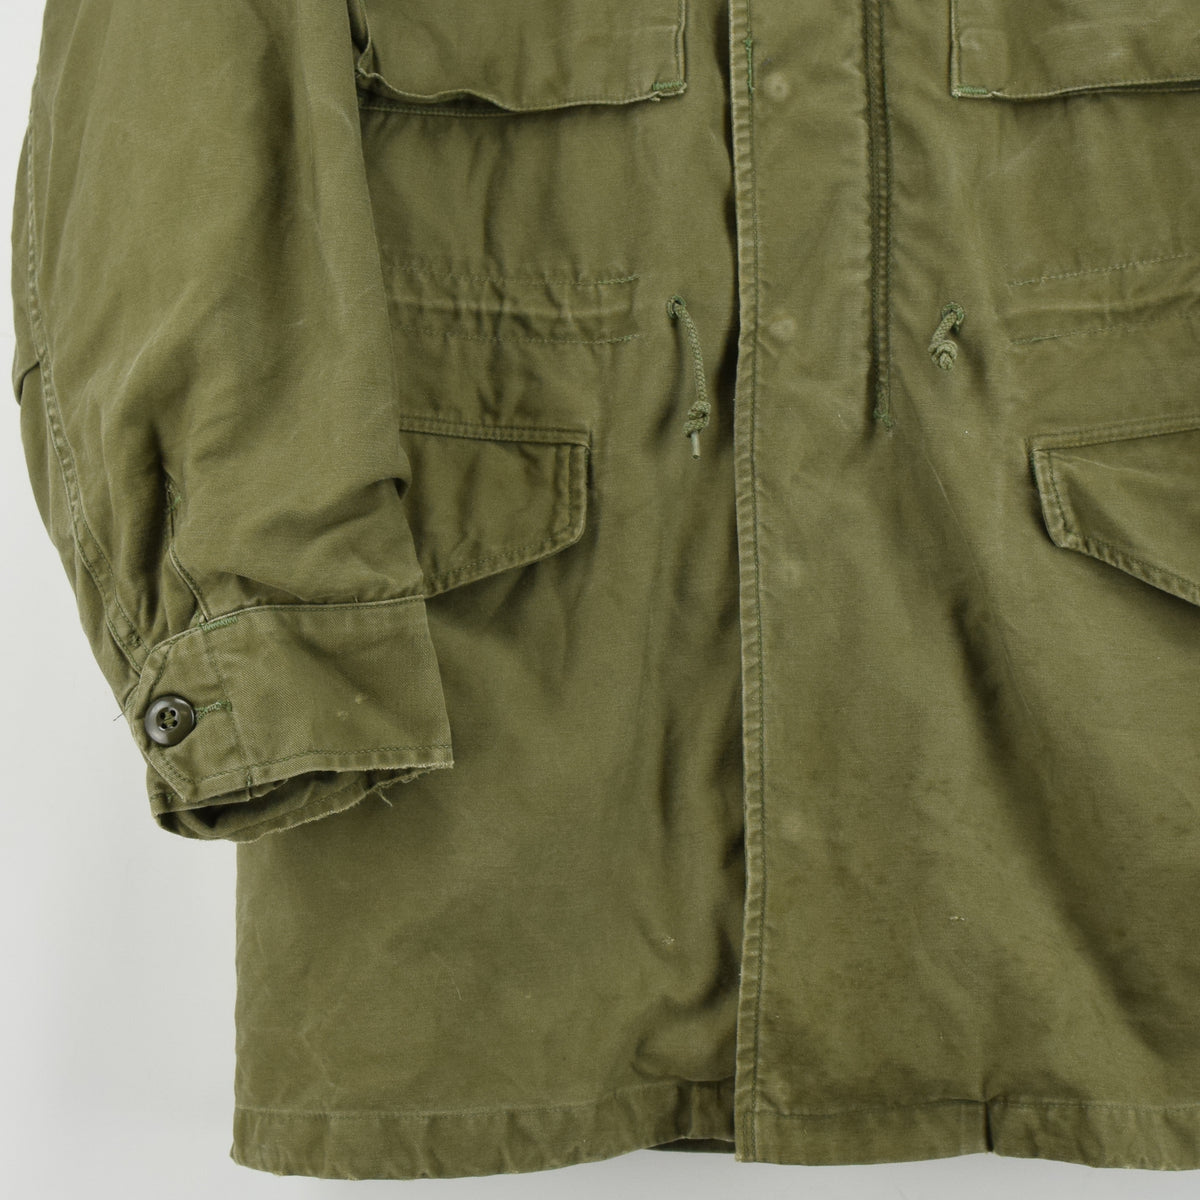 Vintage 50s M-1951 Korean War US Army Field Jacket Olive Green Conmar Zip M front hem